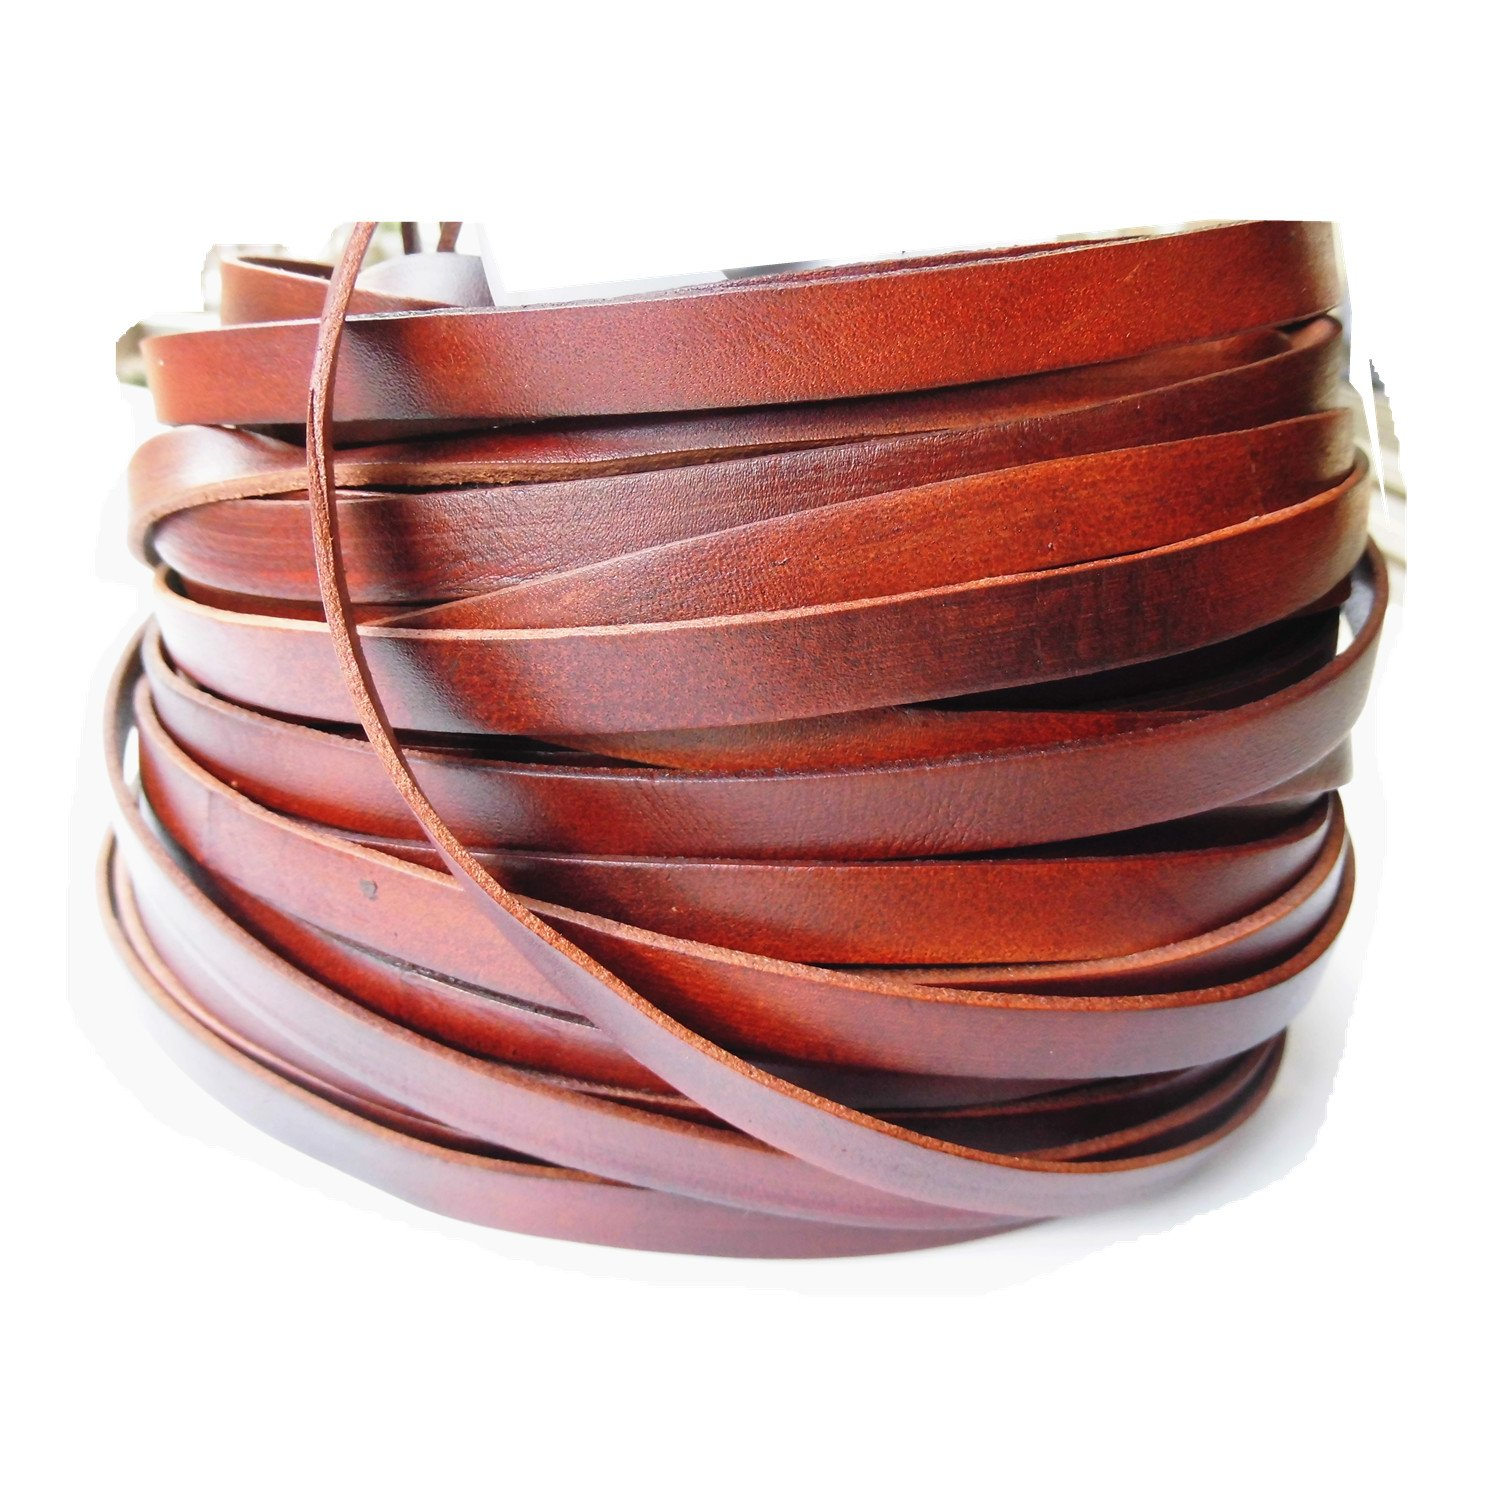 Glory Qin 50 Yards 10mmx2mm Genuine Cow Hide Flat Leather Srip, 10mm Wide Real Leather Craft for Jewelry Making LeatherRush (Brown)